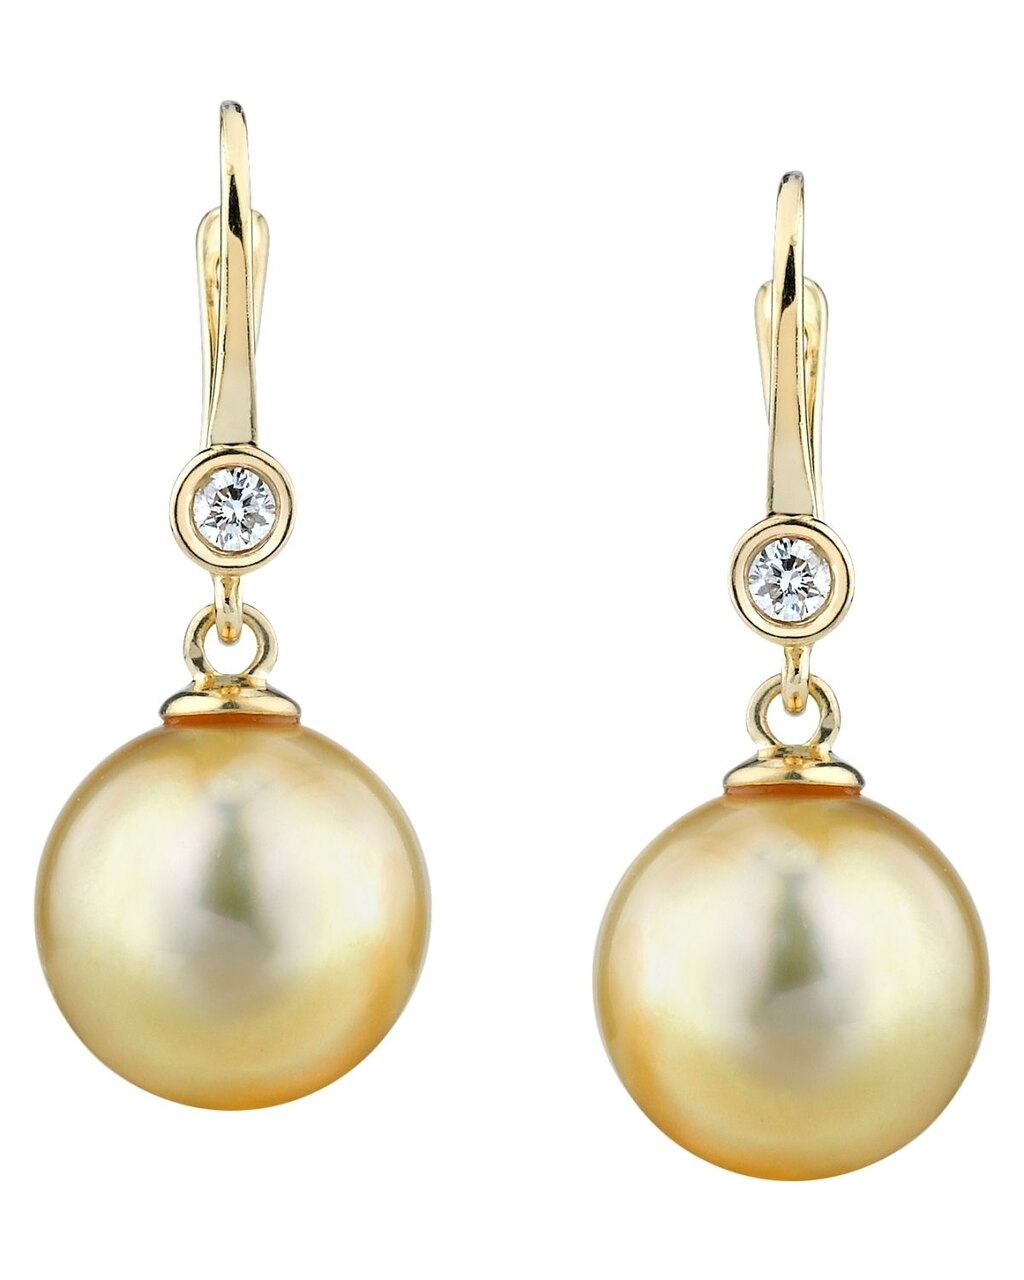 Exquisite earrings feature two 10.0-11.0mm  Gold South Sea pearls, selected for their luminous luster